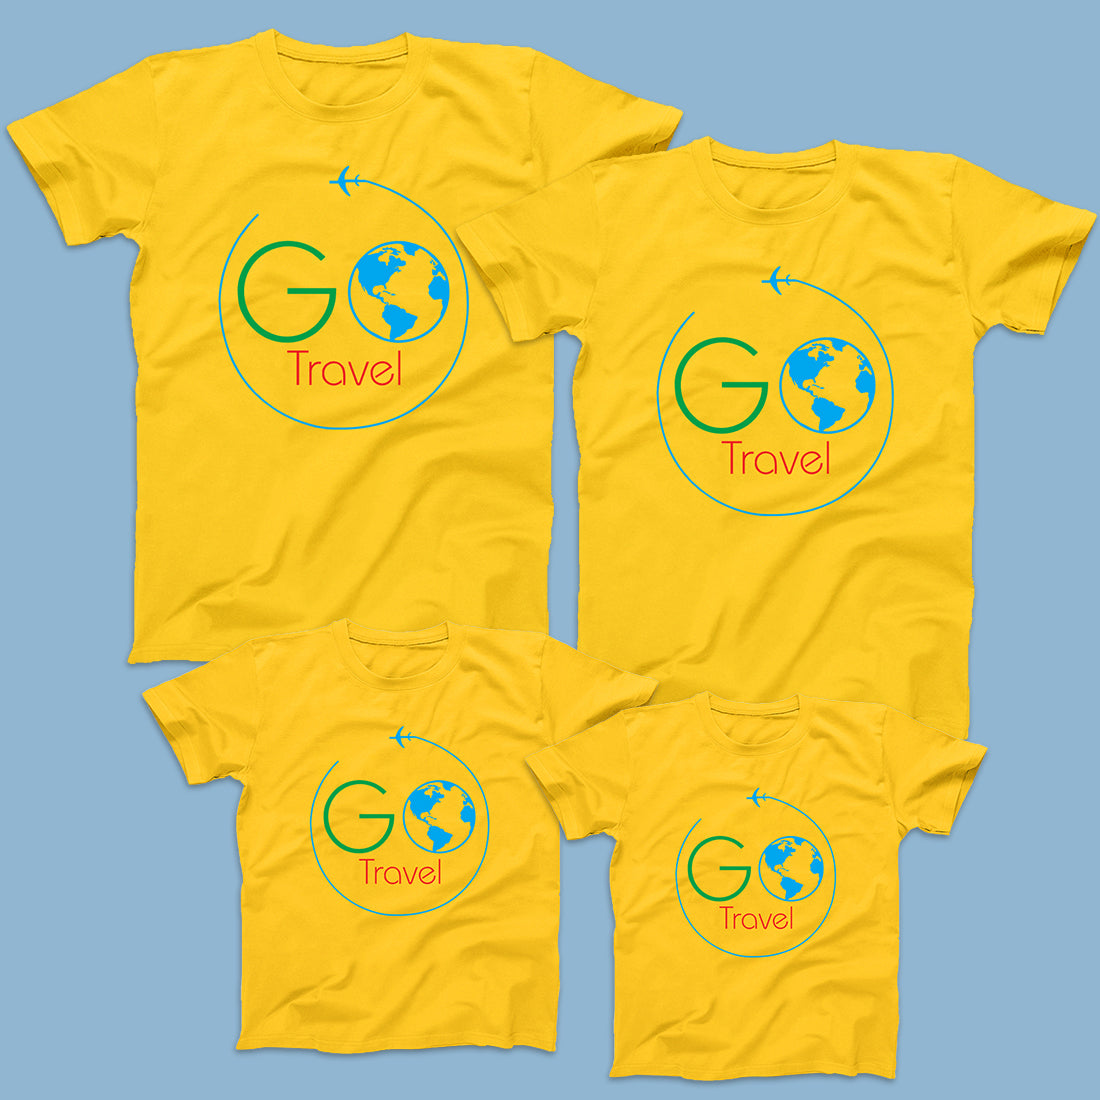 Go Travel- Travel T-Shirts for 4